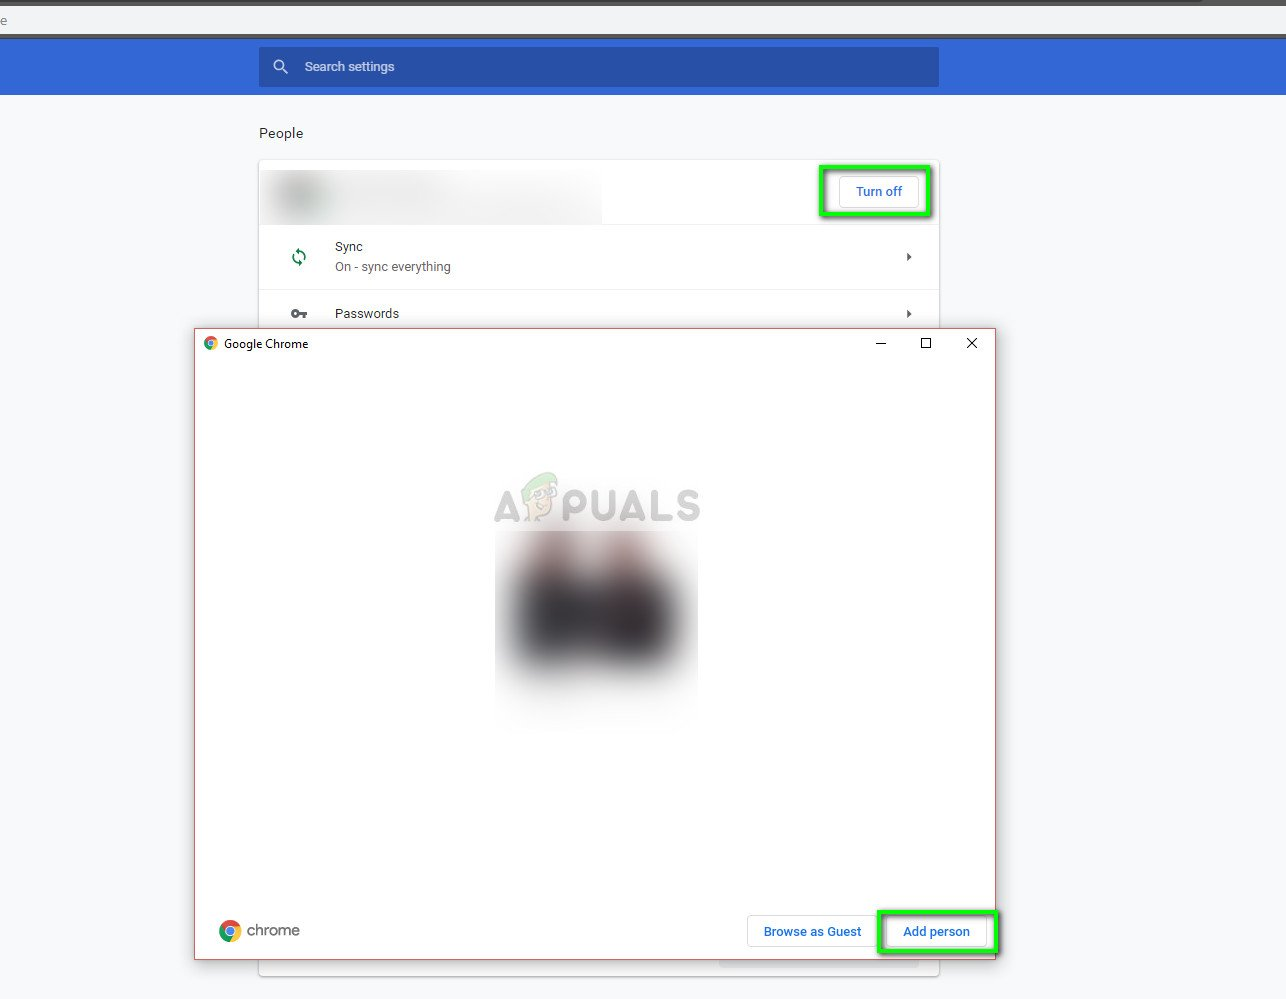 Creating a new profile and removing the old one in Google Chrome